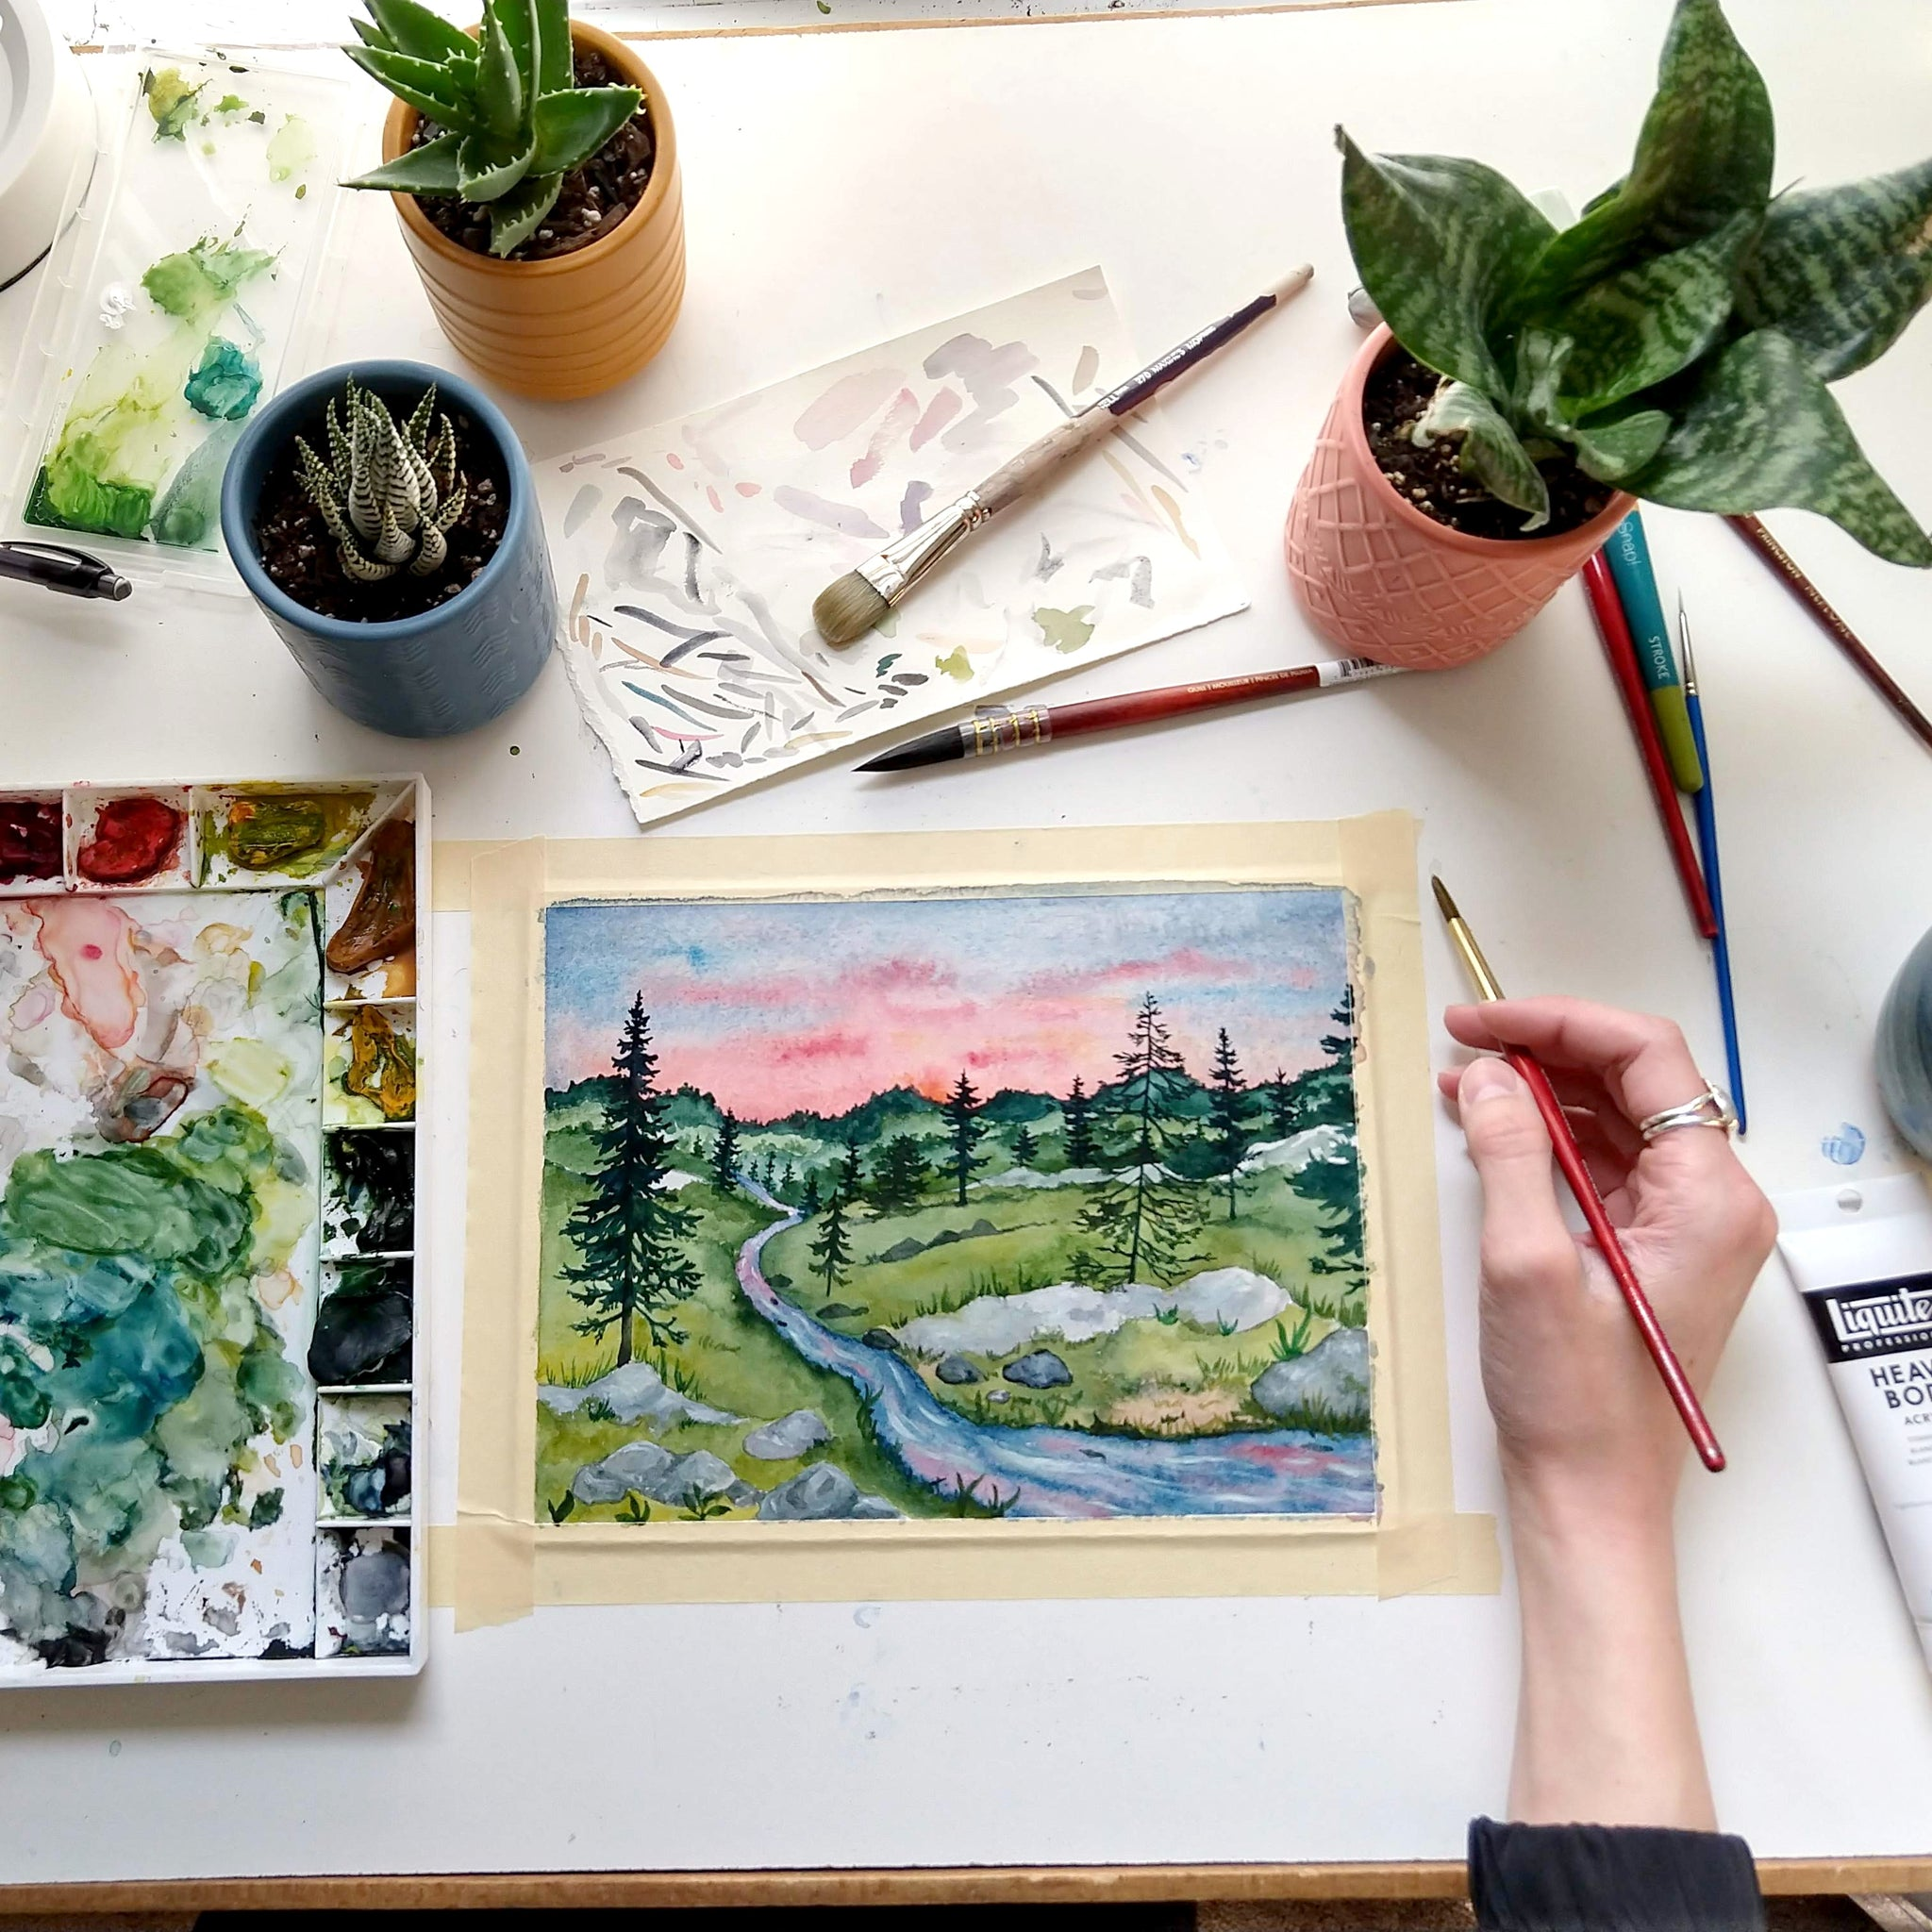 Staying organized in a small art studio